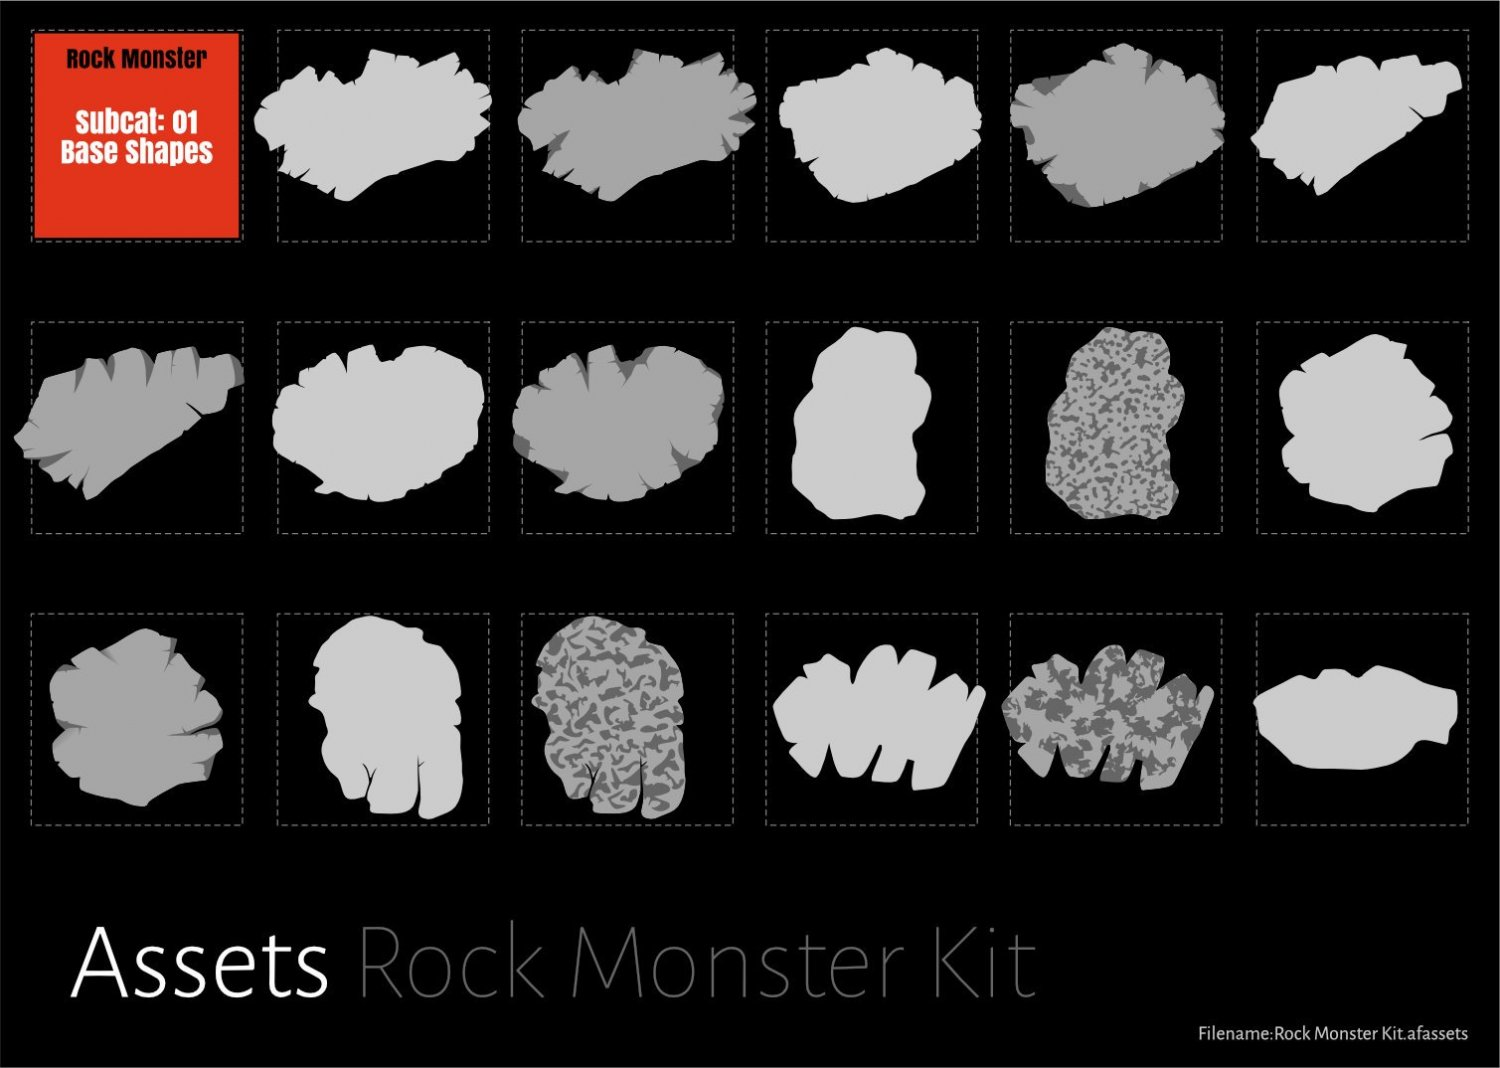 Rock Monster Kit 01@0.3x.jpg